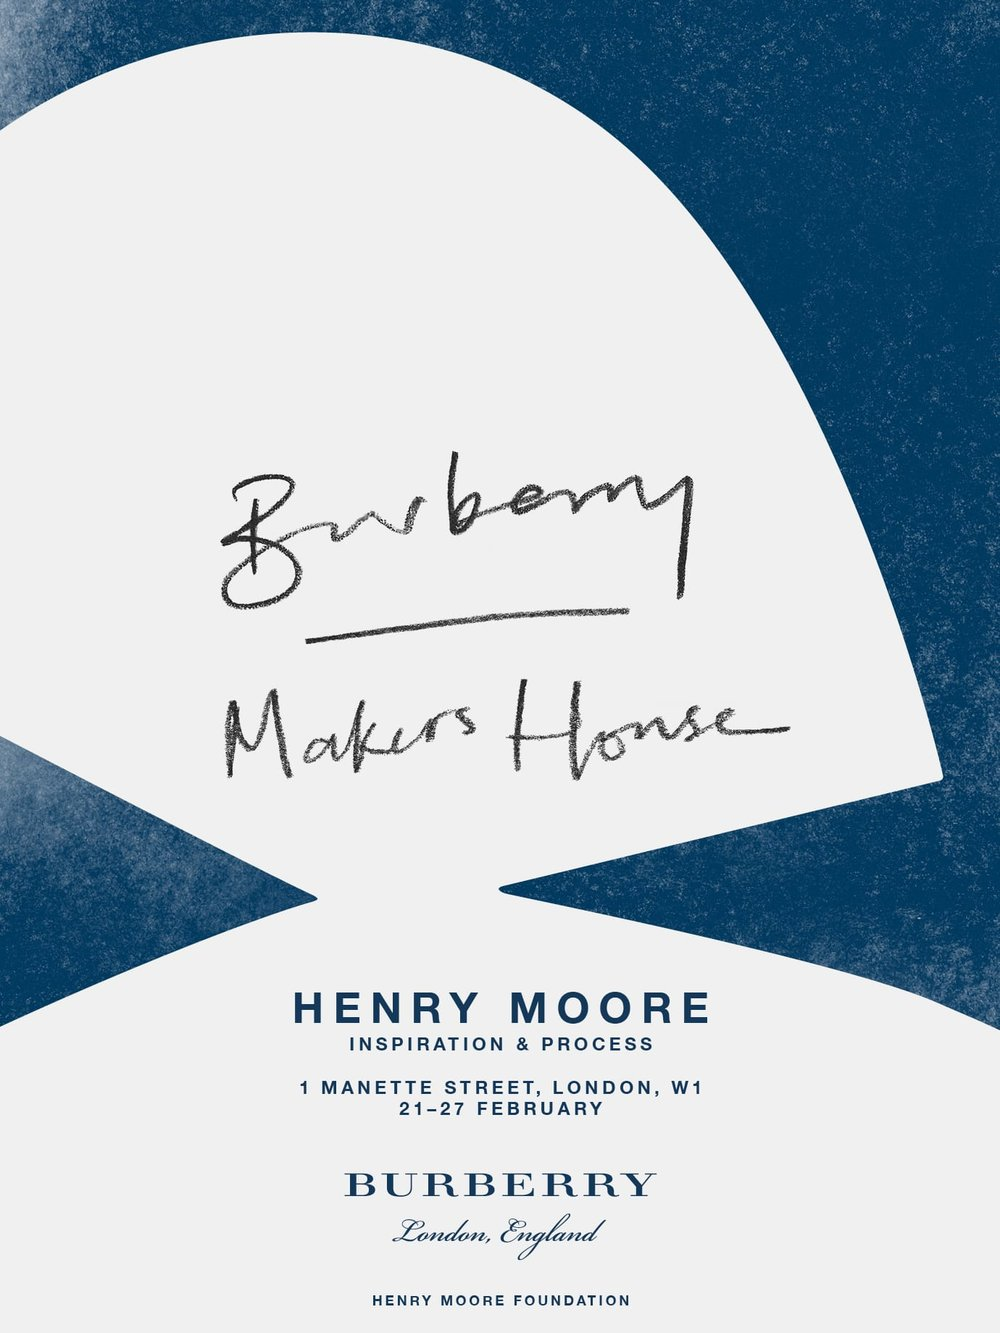 Burberry Makers House 2017 -Workshop